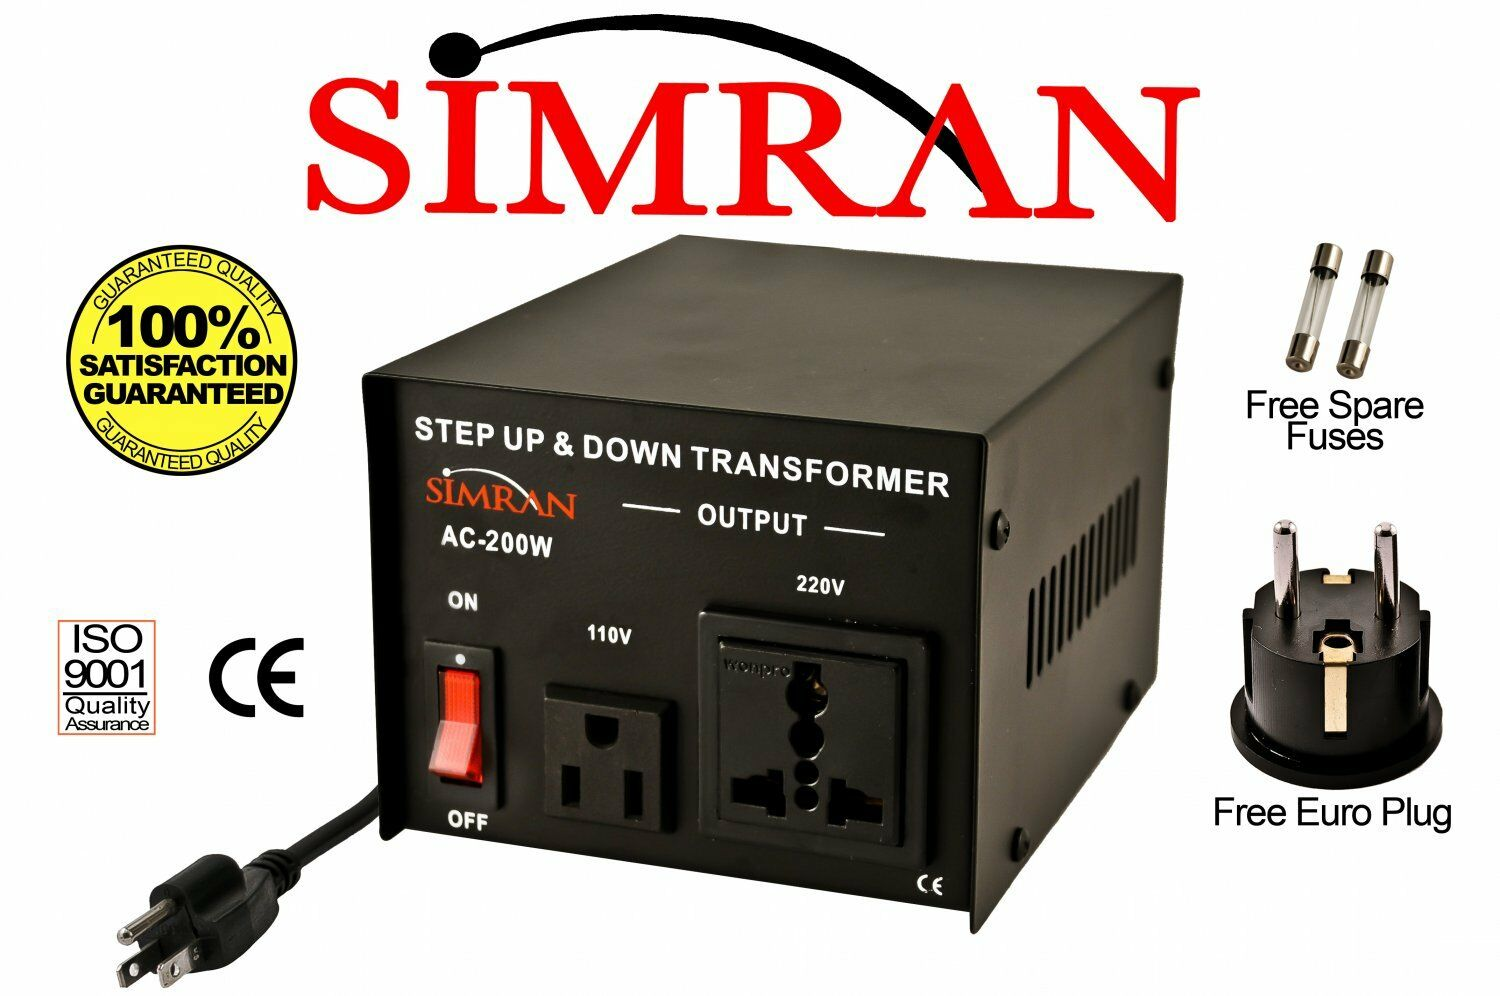 Купить Simran AC200W - Delux 200 Watt 110v to 220v Transformer Voltage Converter 220 to 110 volt AC200W